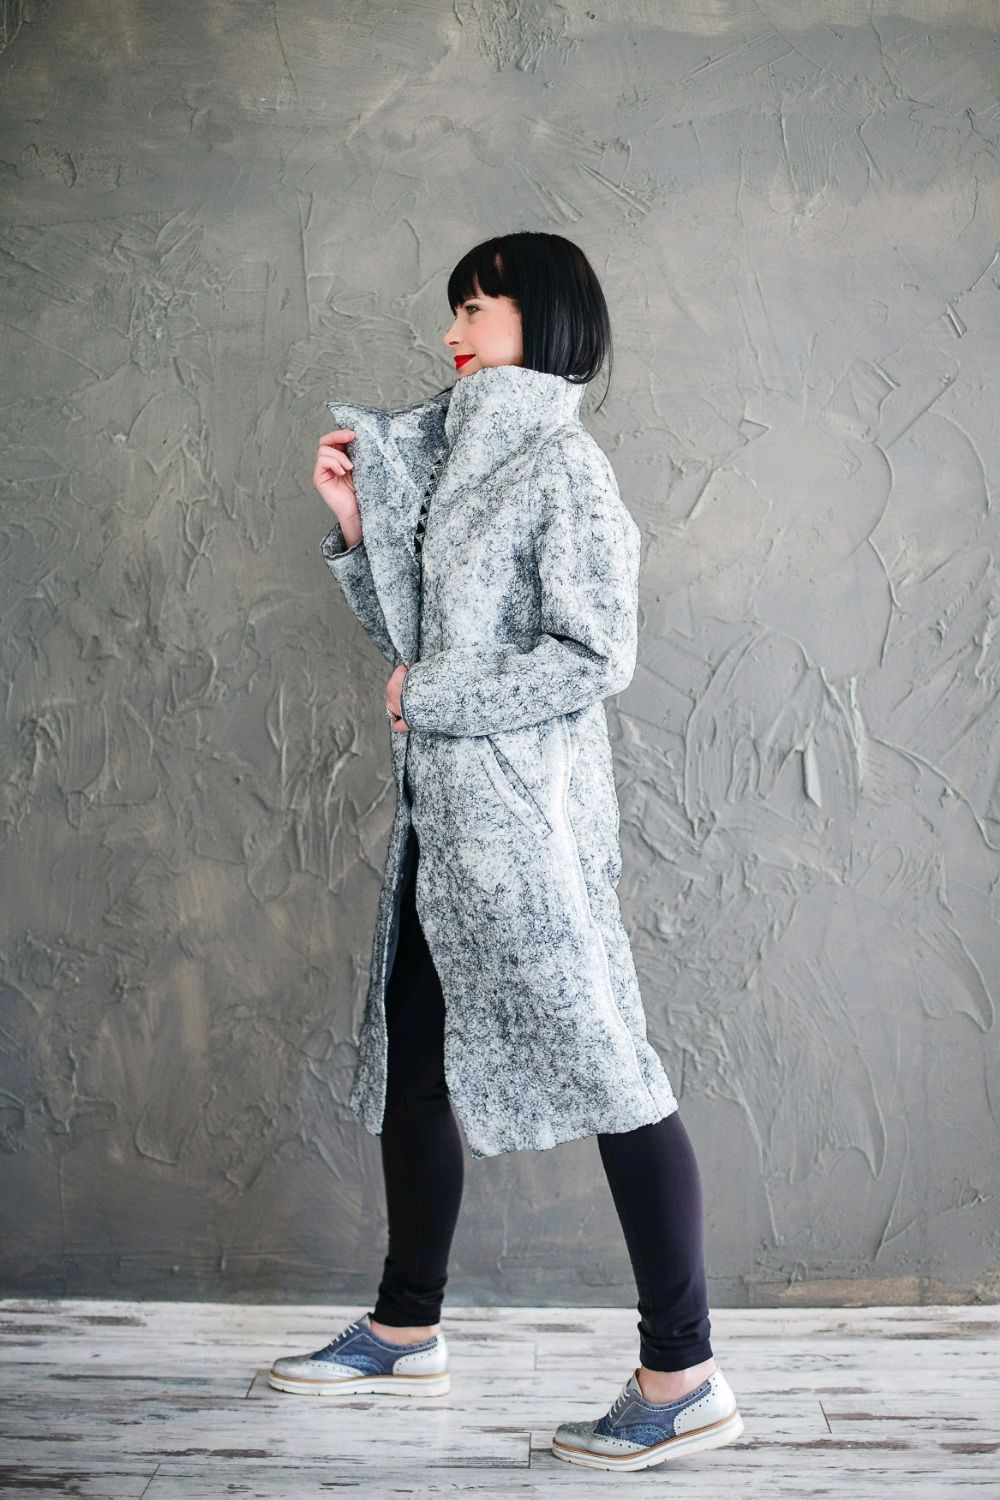 The severity of the coat in the style of military 14